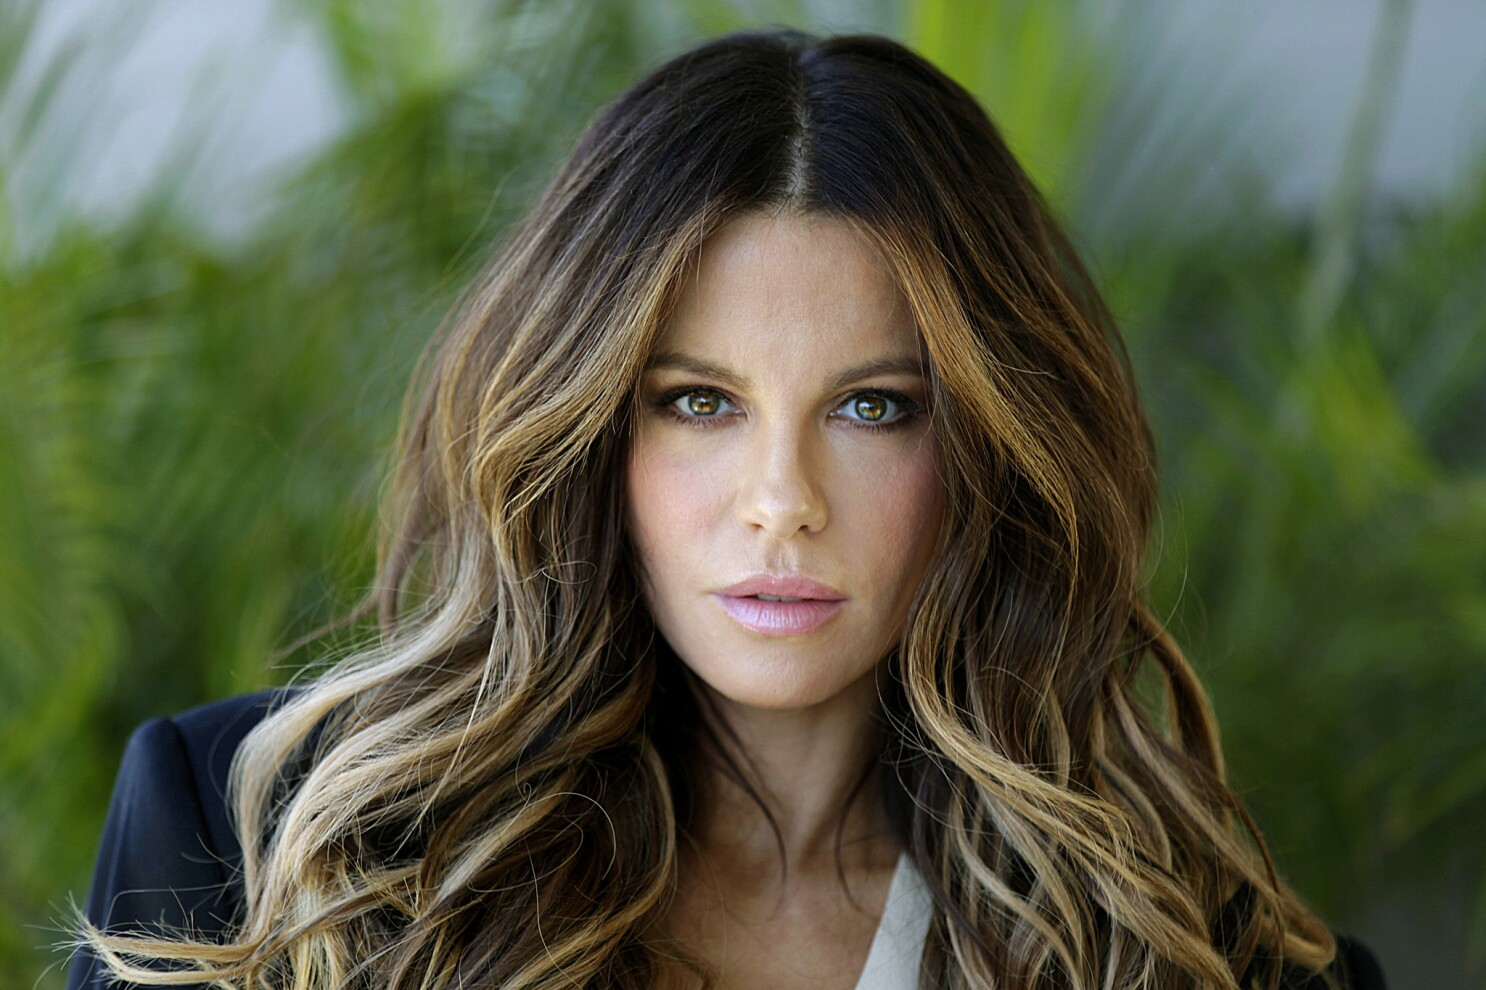 Kate Beckinsale on 'The Widow' and dating in a fishbowl: 'I'm OK being  Marmite' - Los Angeles Times